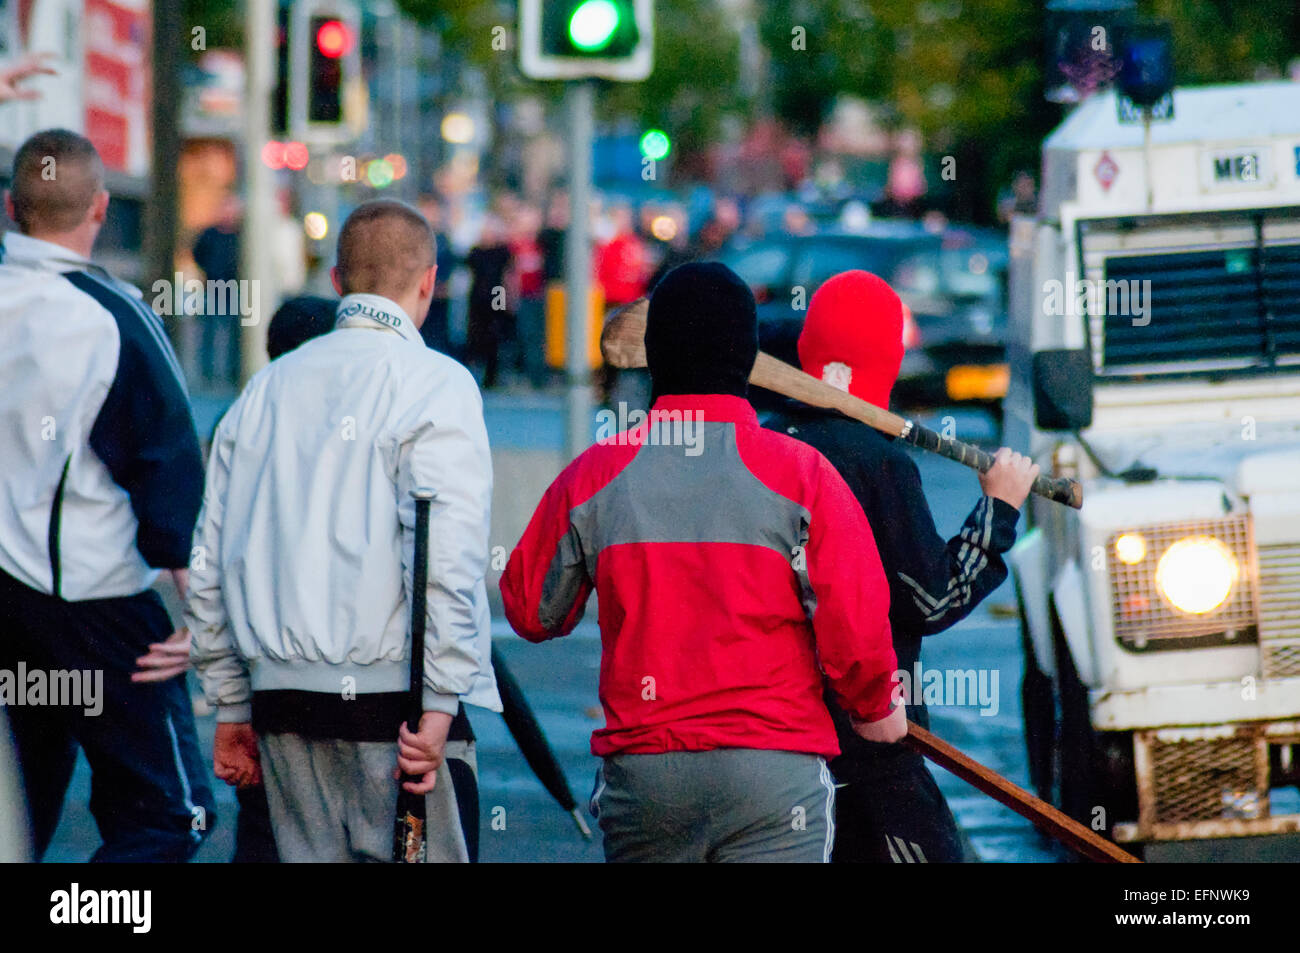 Belfast, Northern Ireland. 31 Aug 2009 - Rival groups of Nationalist (foreground) and Loyalist (background) youths - Stock Image